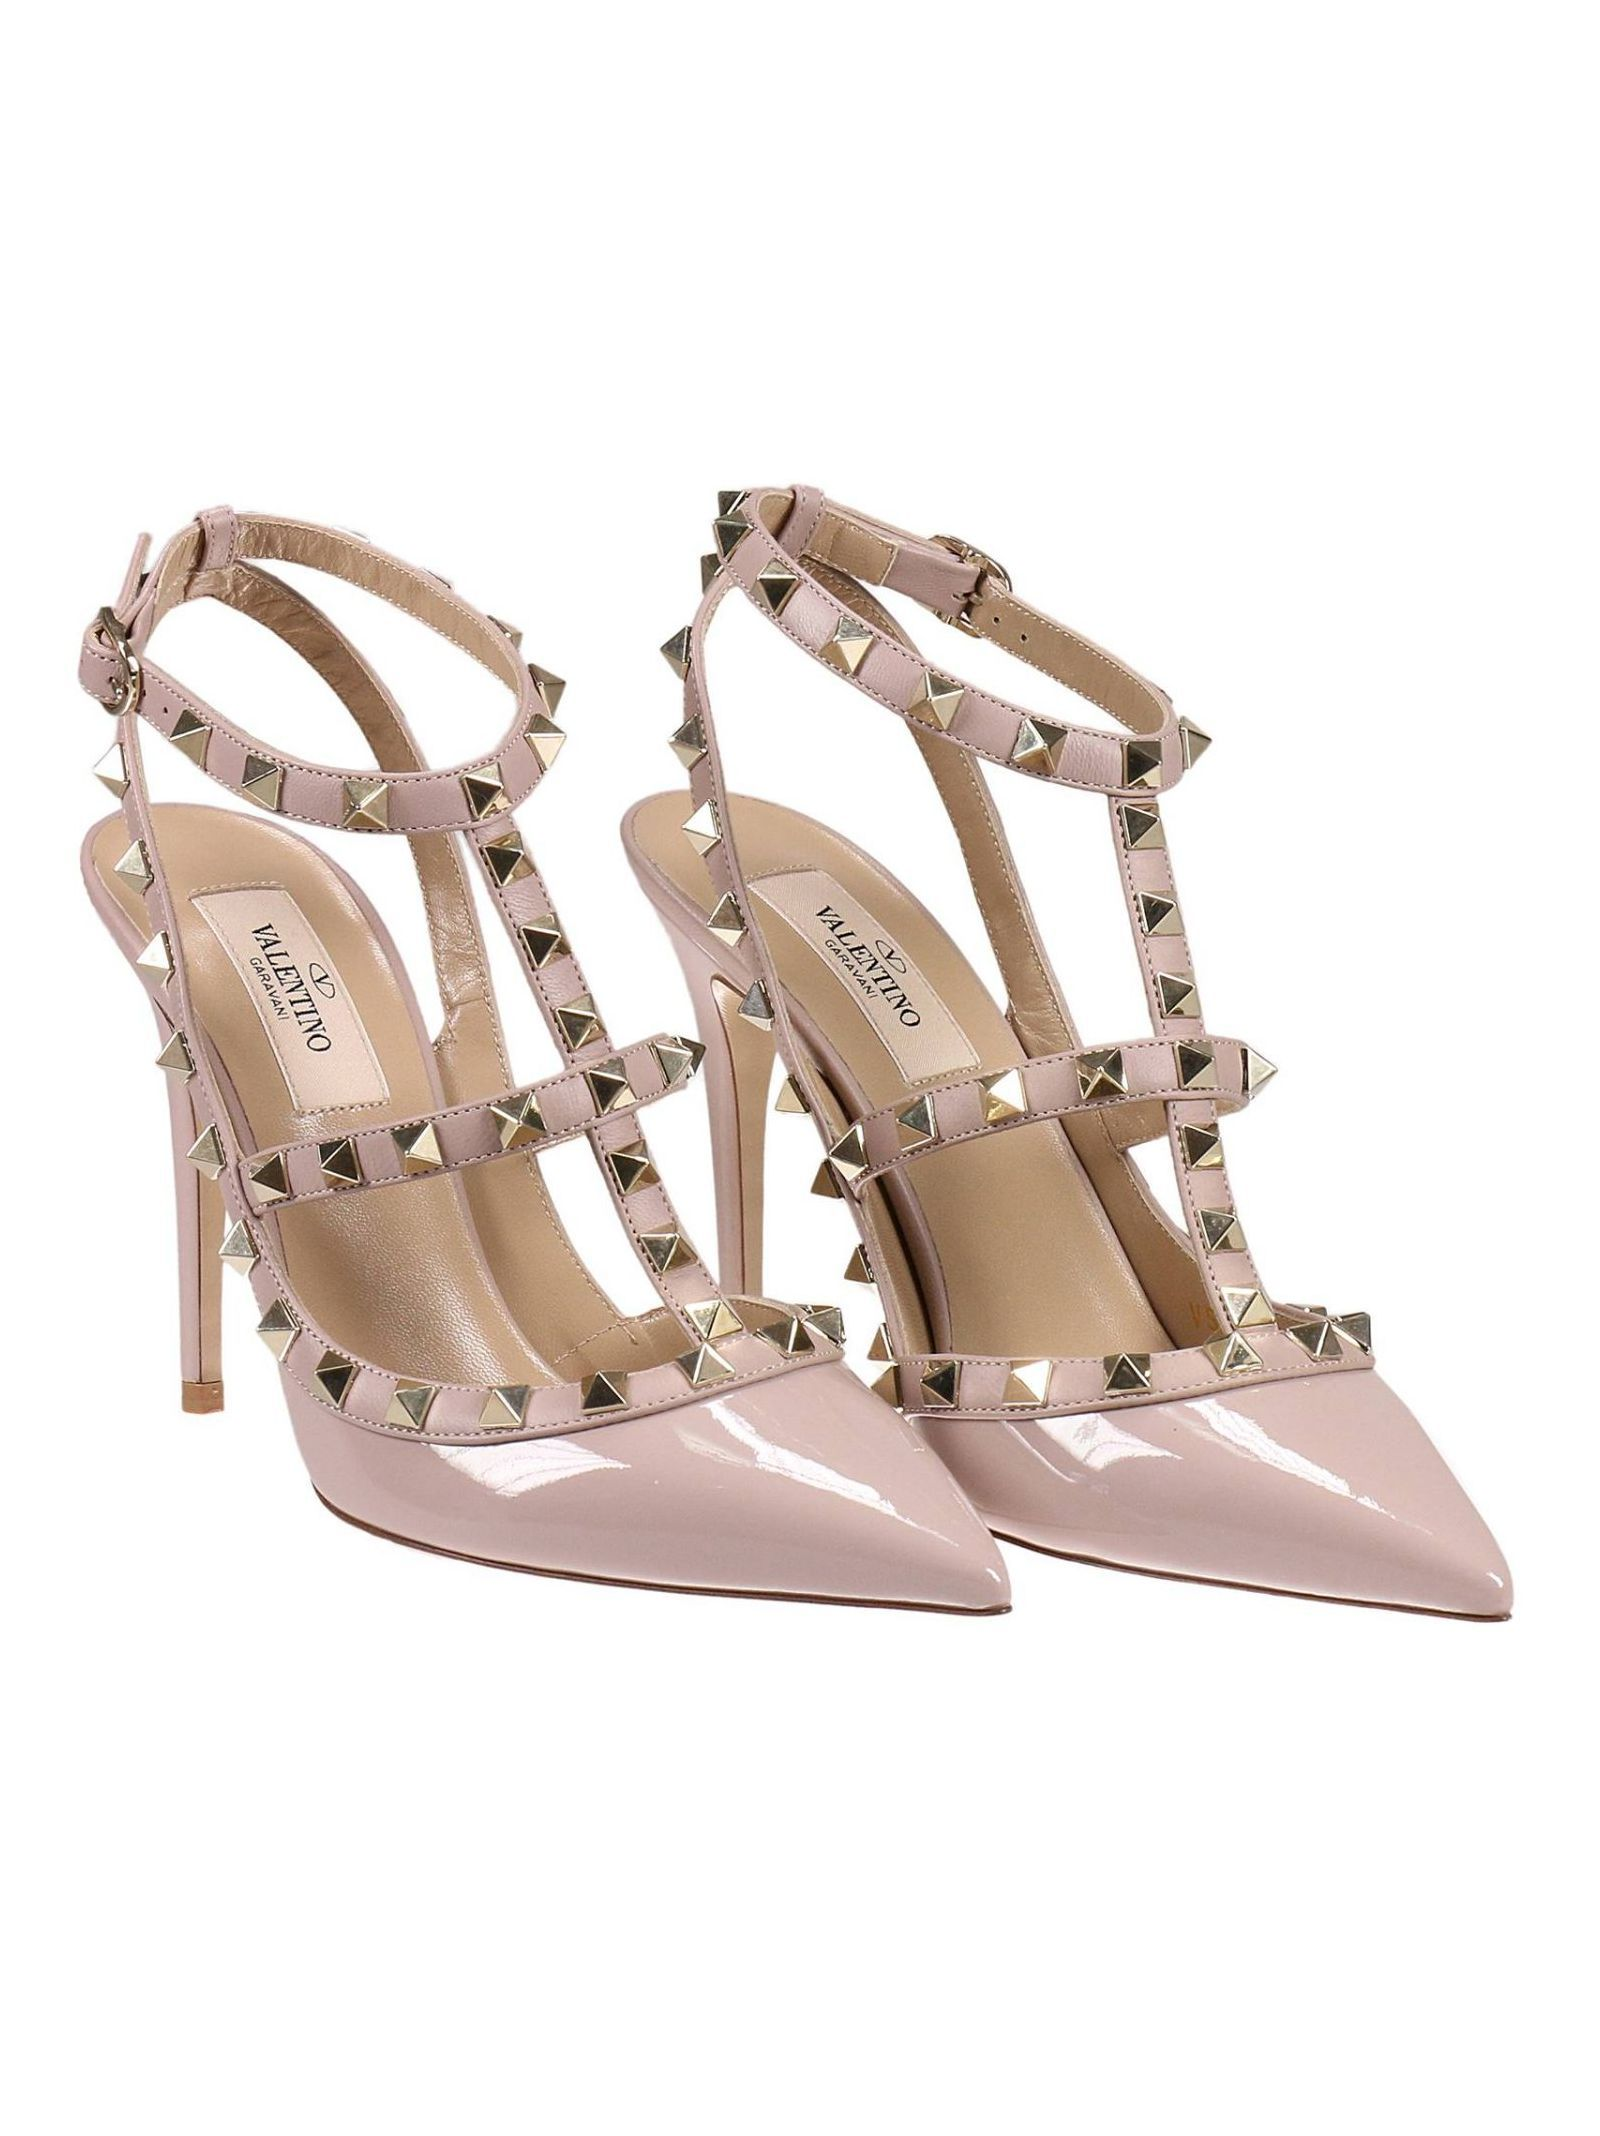 Italian designer Luxury Fashion for Men & Women. Find this Pin and more on shoes  Valentino ...